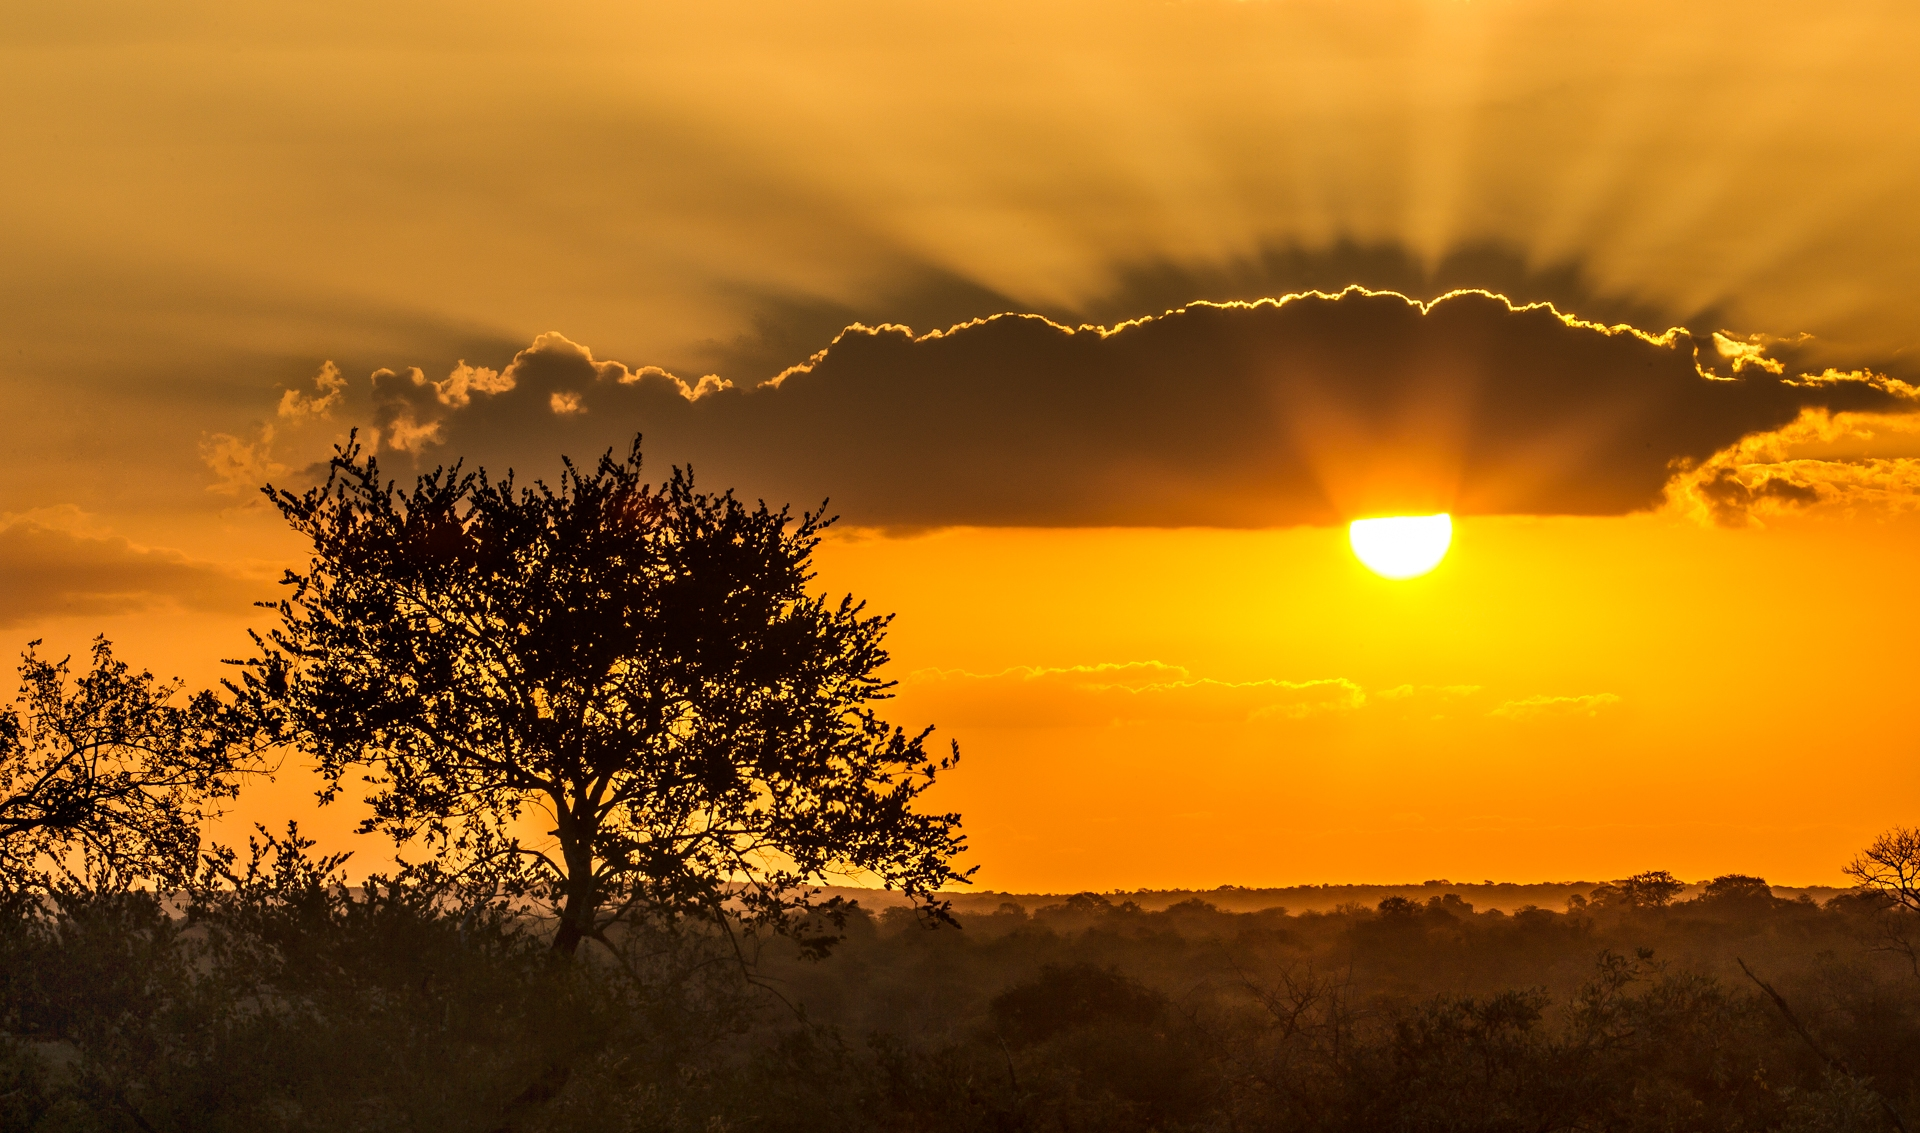 A South African sunset in May